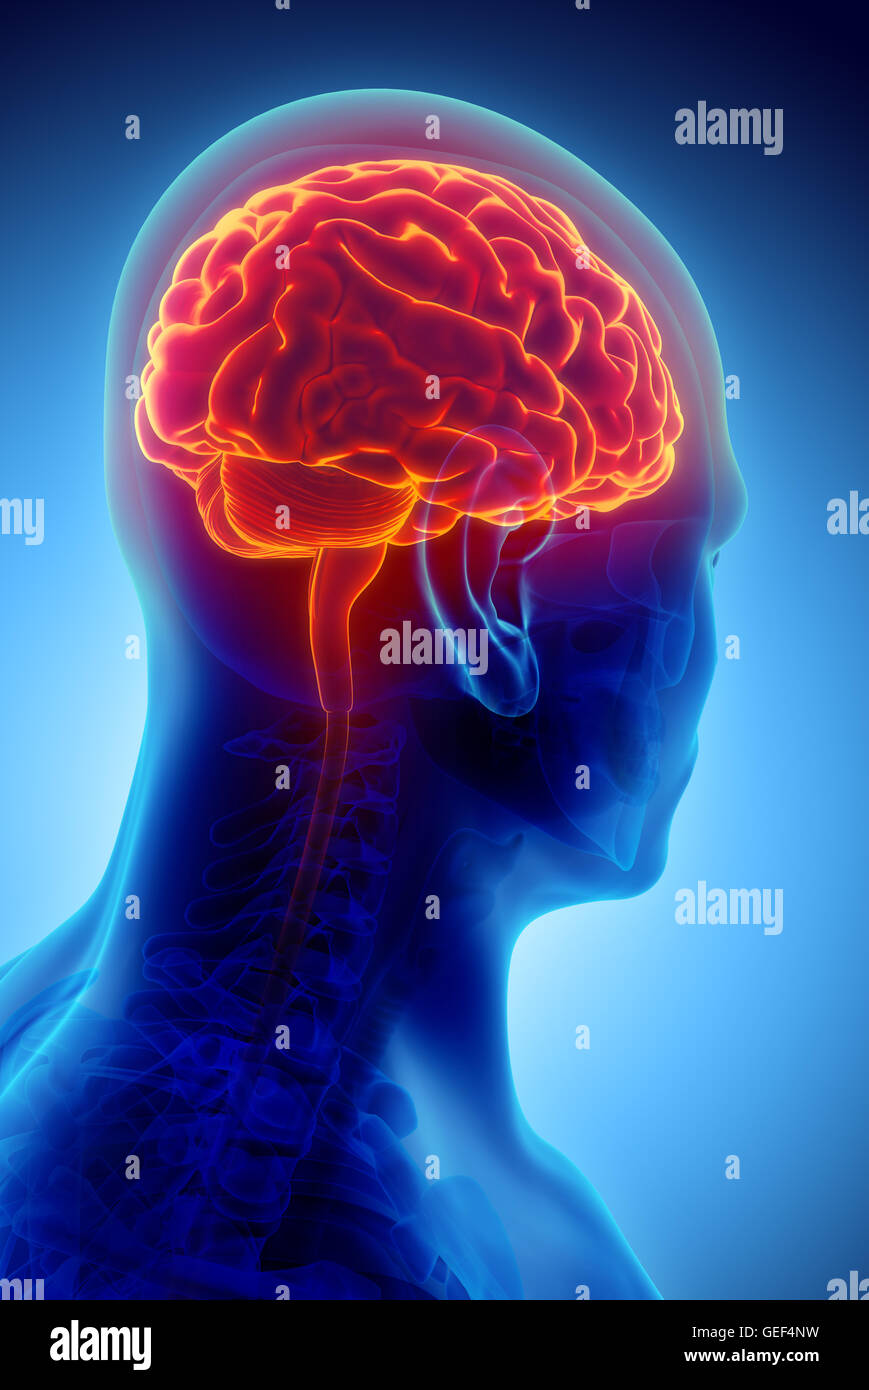 Human Internal Organic - Human Brain, 3D illustration medical concept. - Stock Image